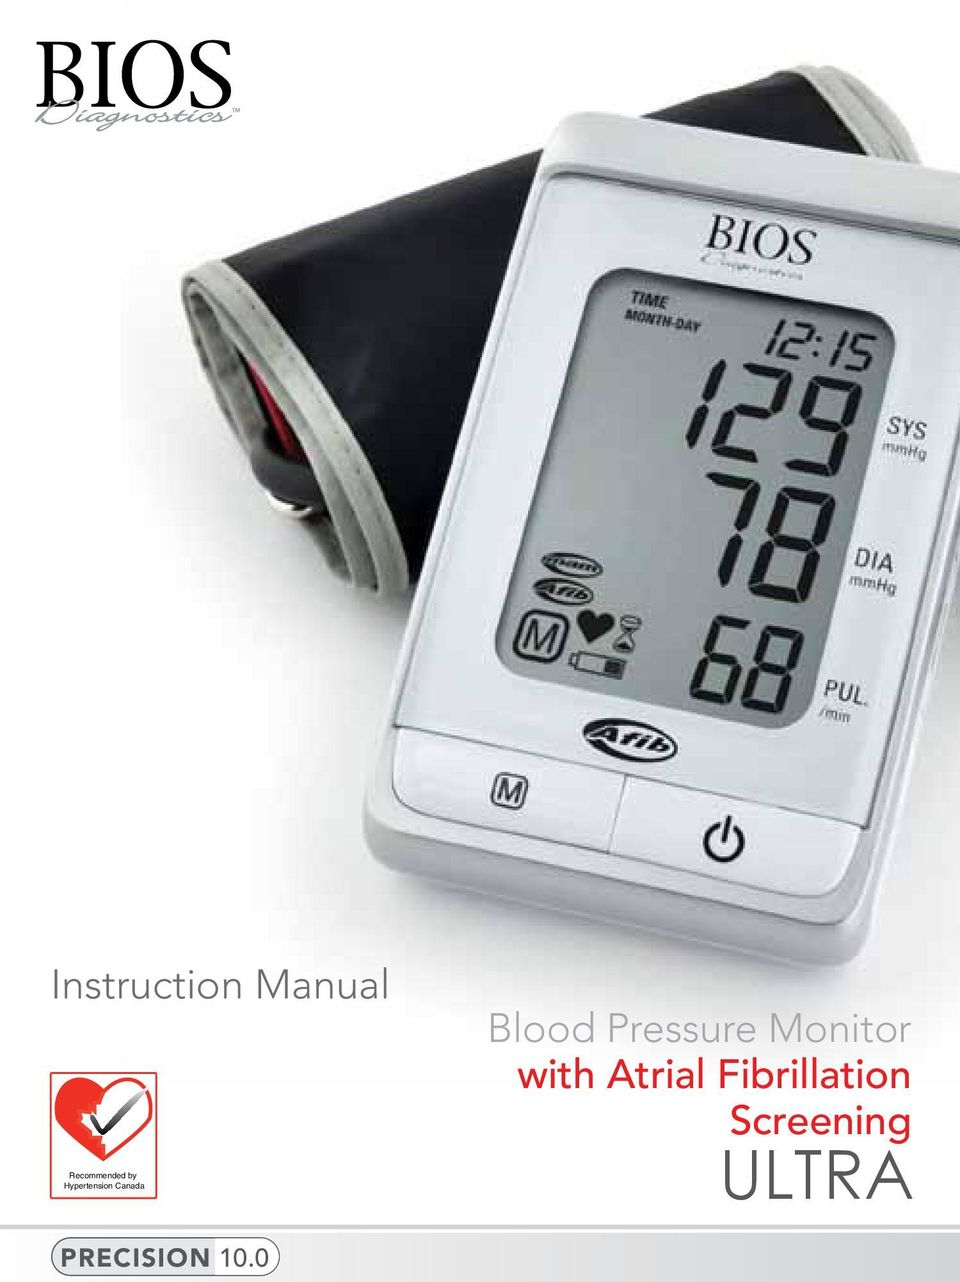 Pressure Monitor with Atrial